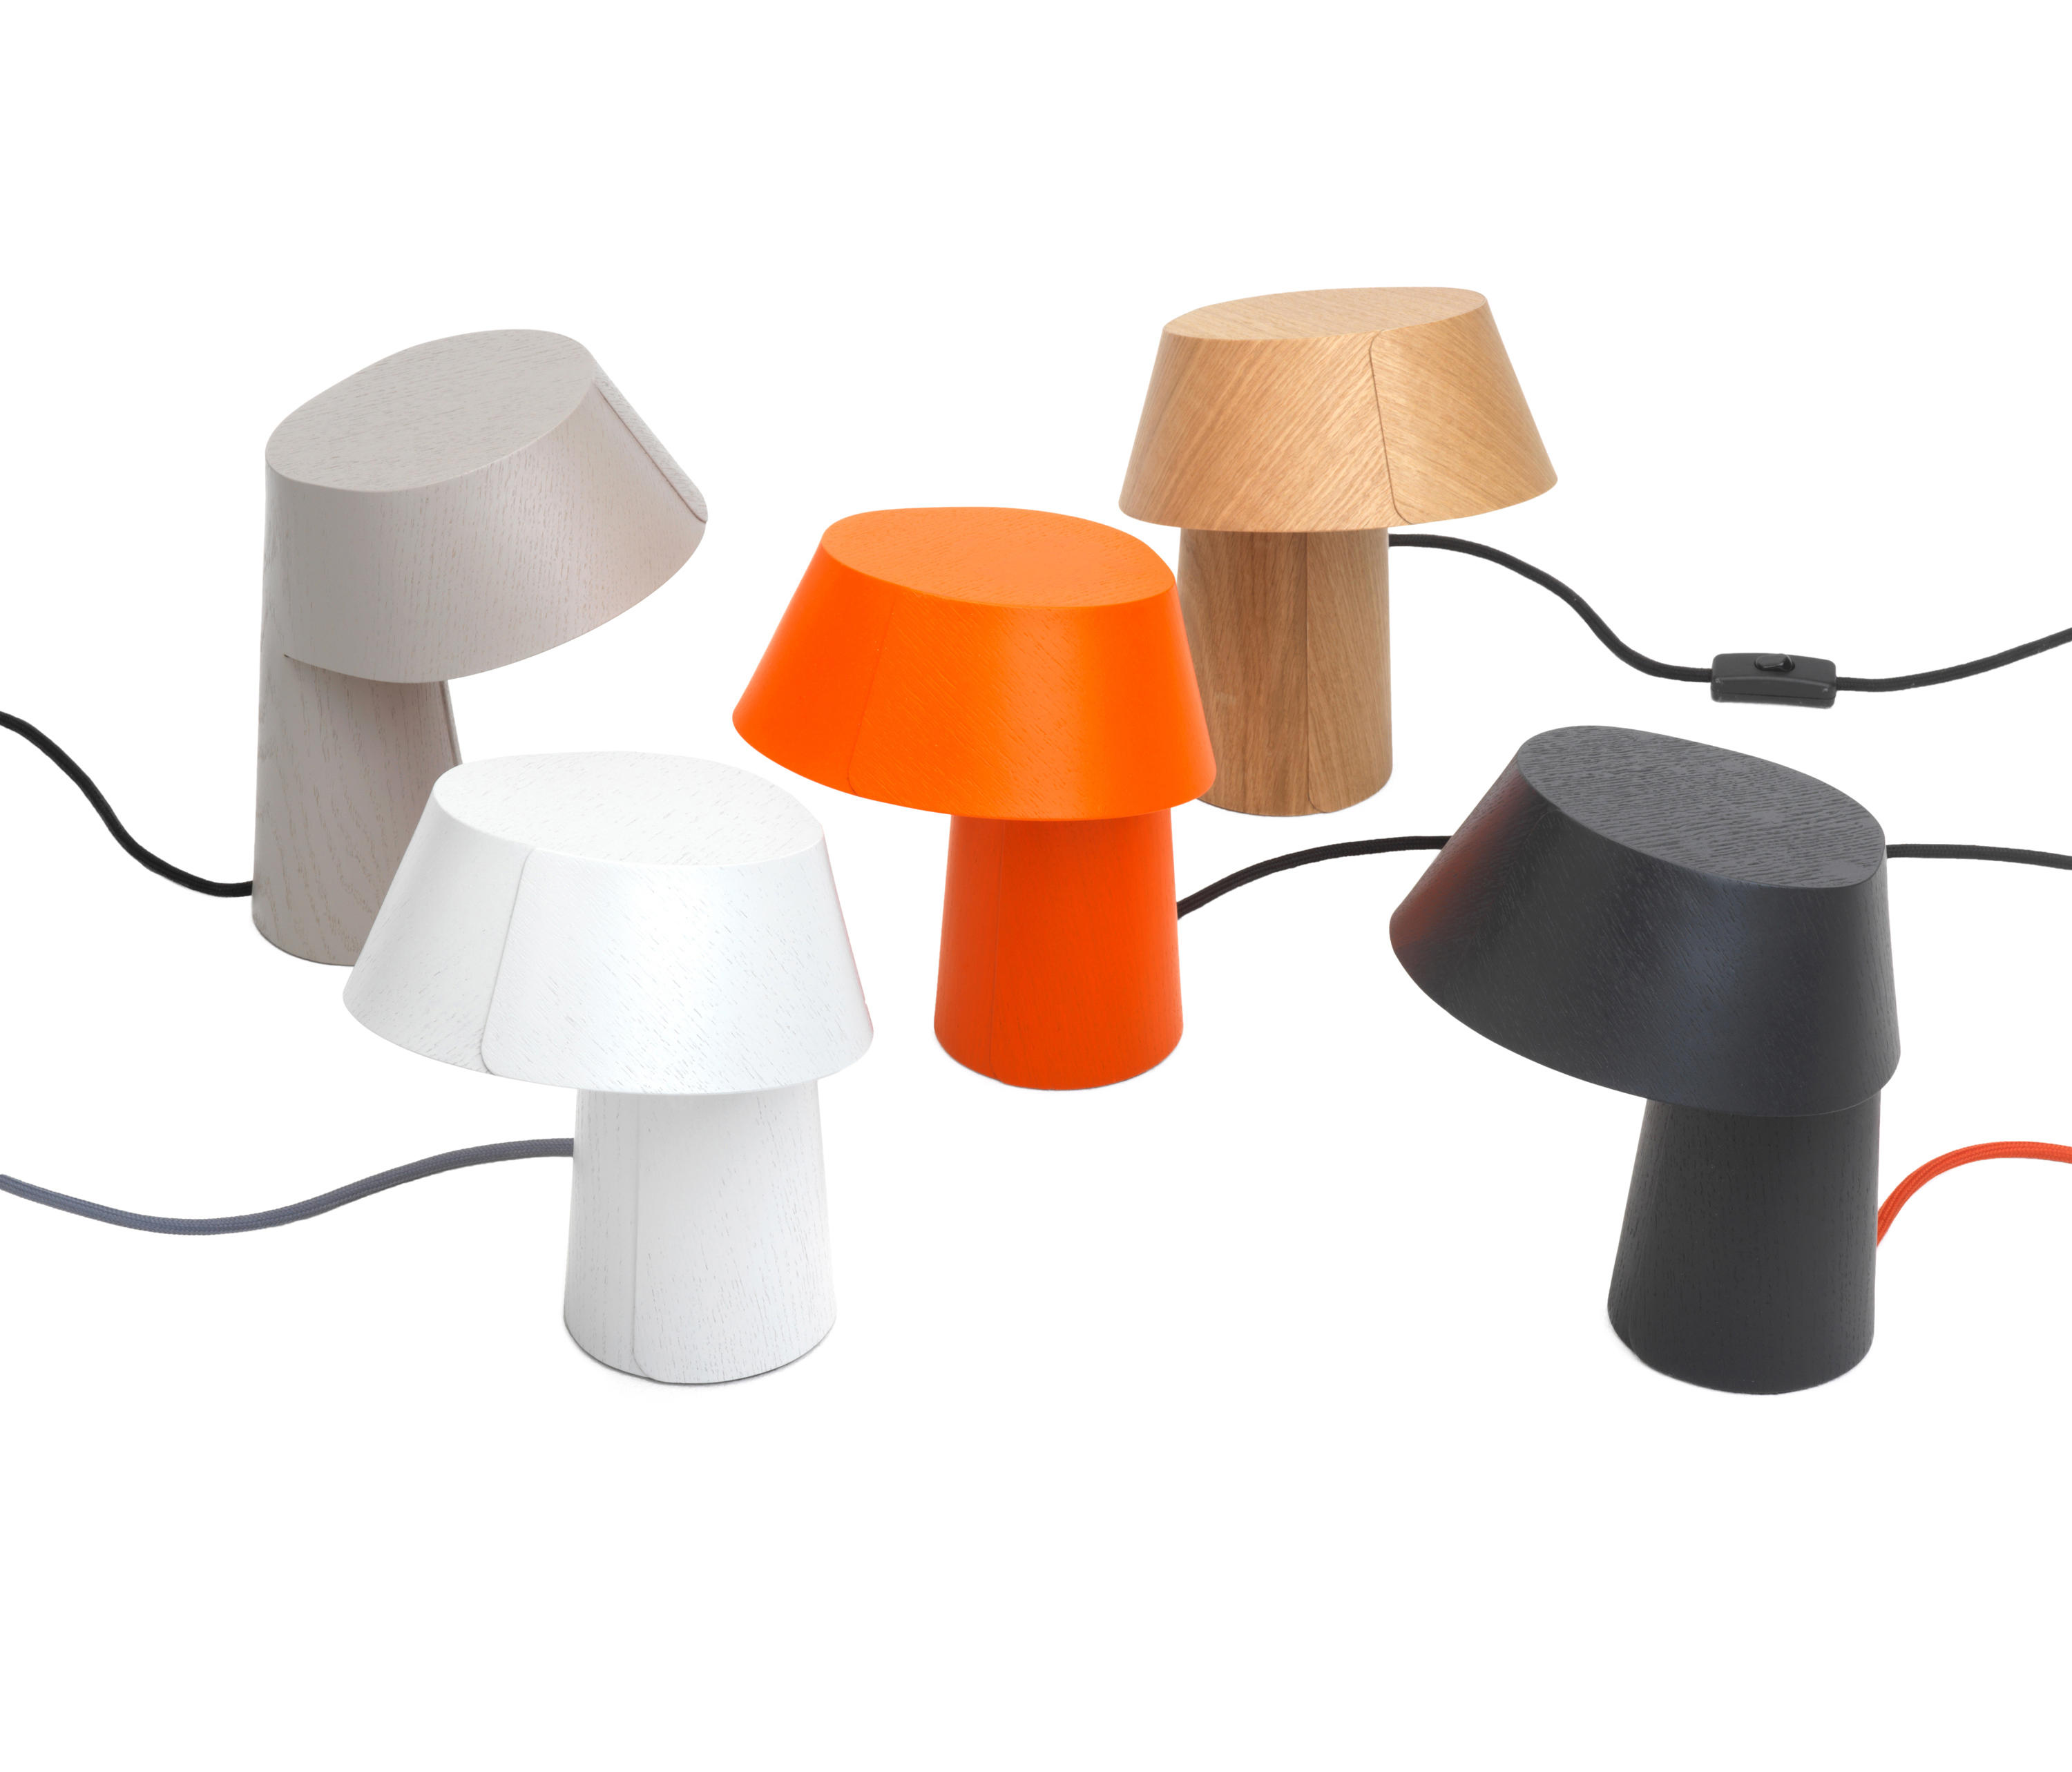 LITTLE P TABLE LAMP - General lighting from Schönbuch | Architonic